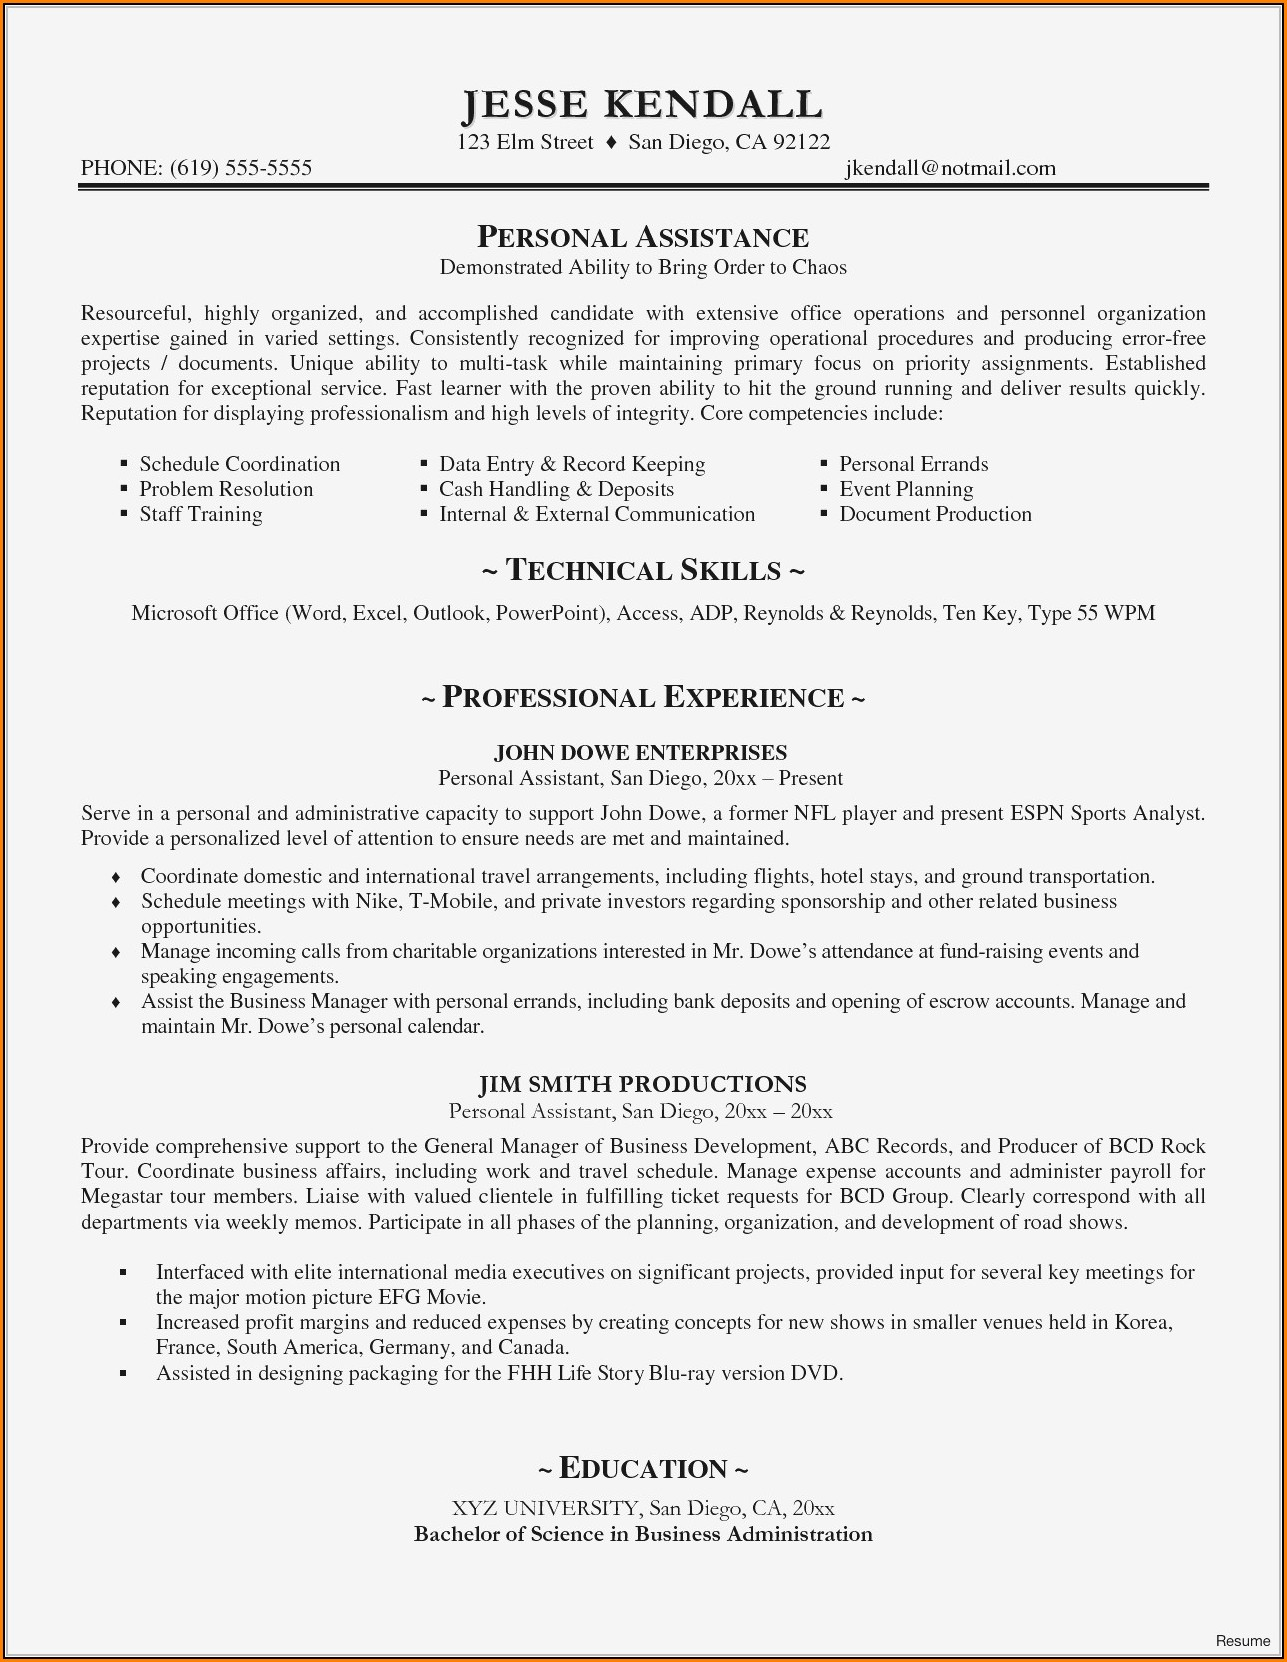 Resume Writer San Diego